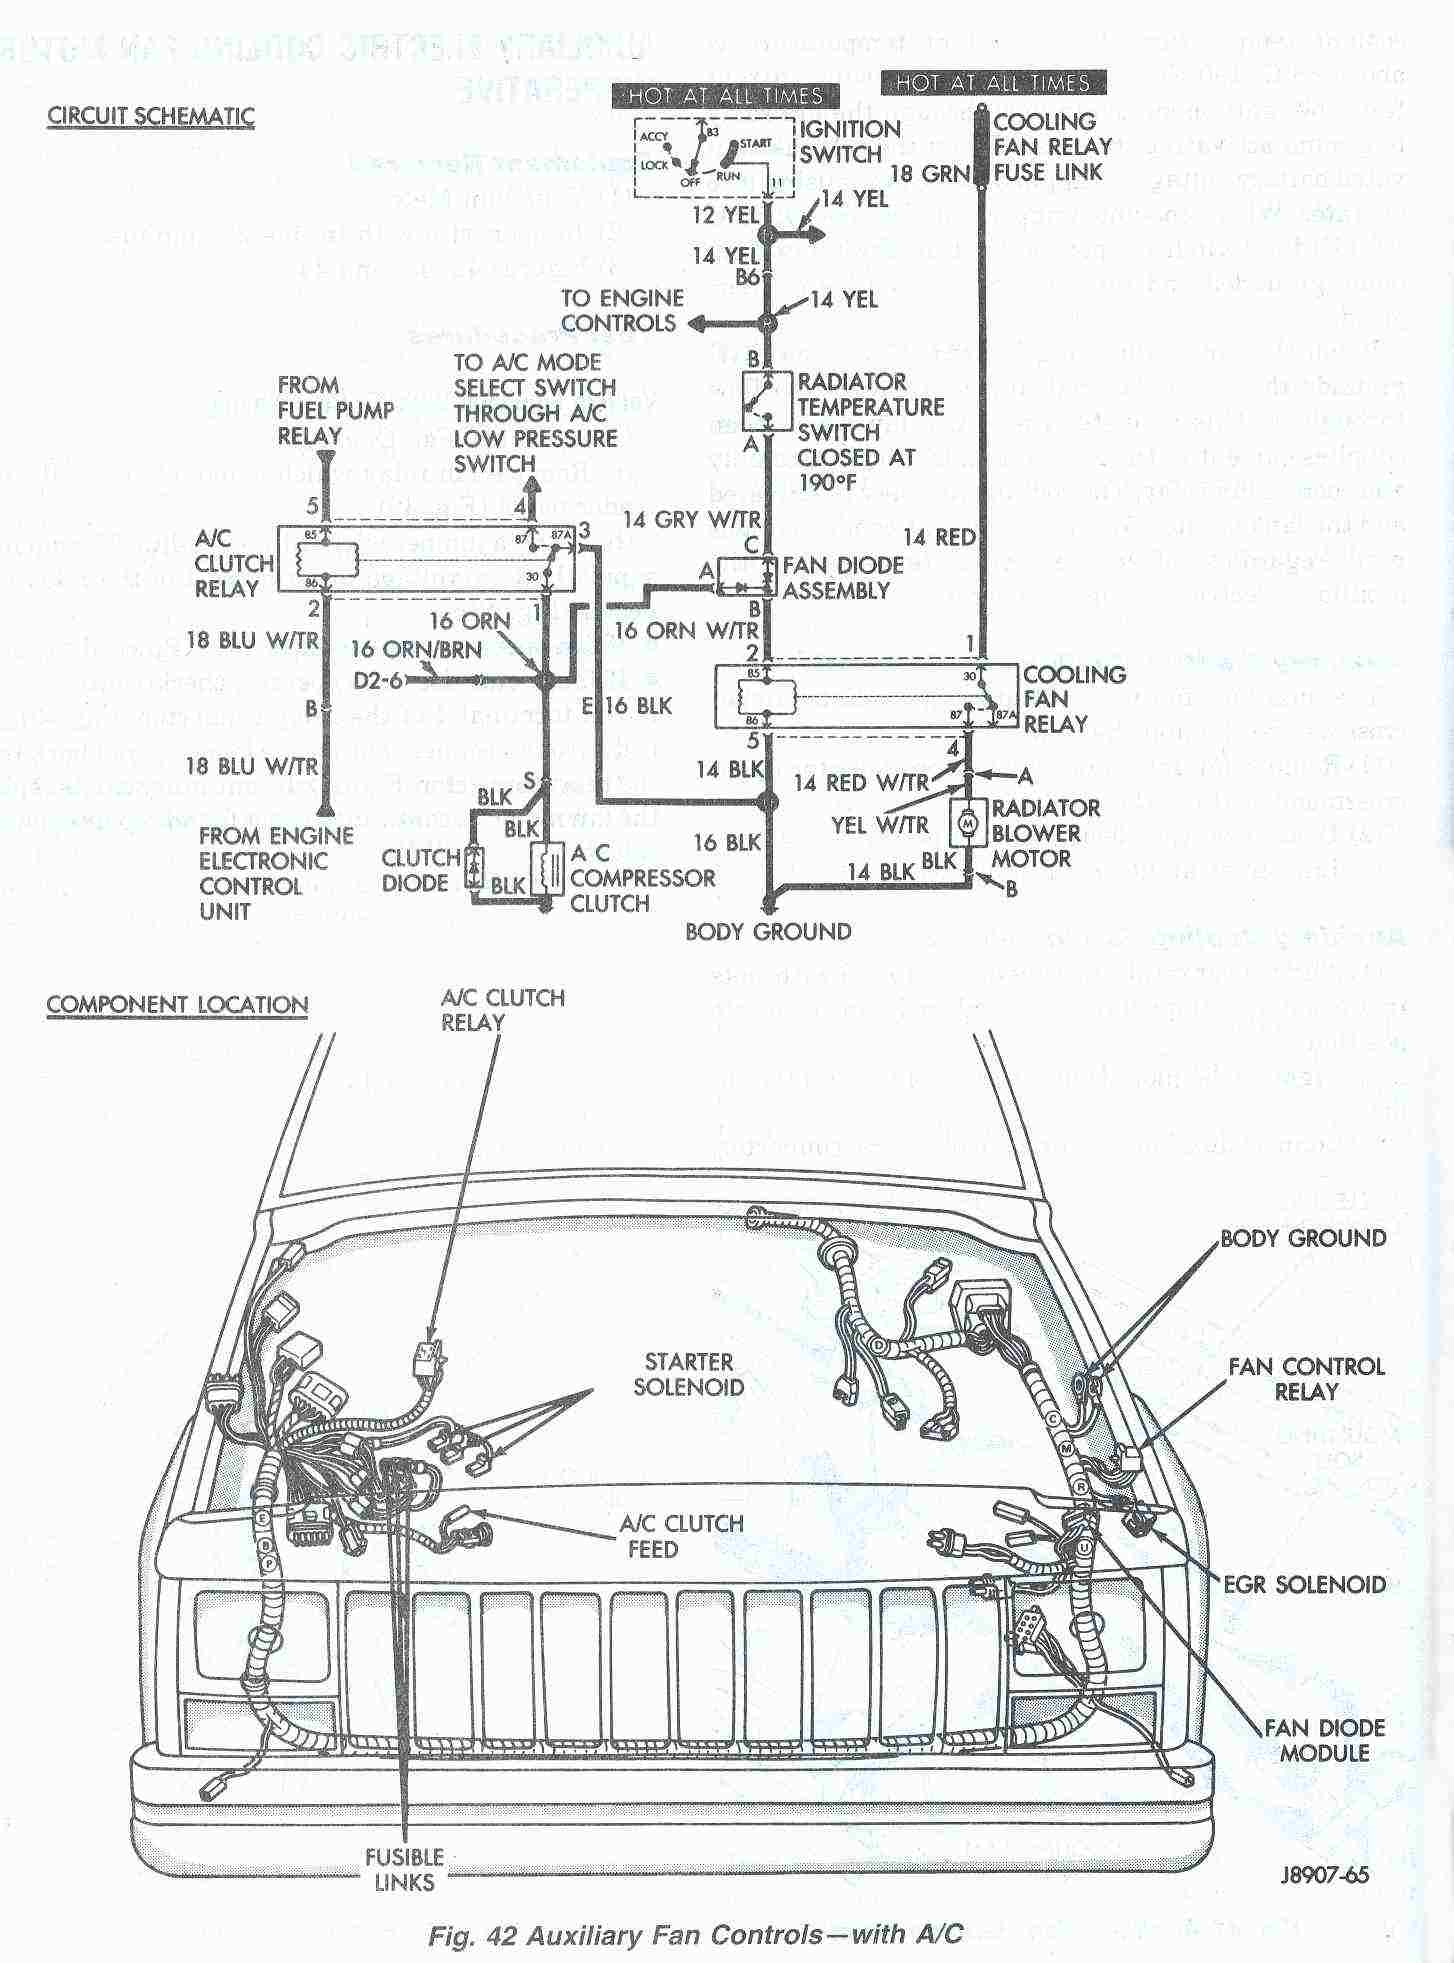 Jeep Cherokee Cooling System Electric Fan Troubleshooting Fans Wiring Schematic Test Procedures For Vehicle Equipped With Air Conditioning